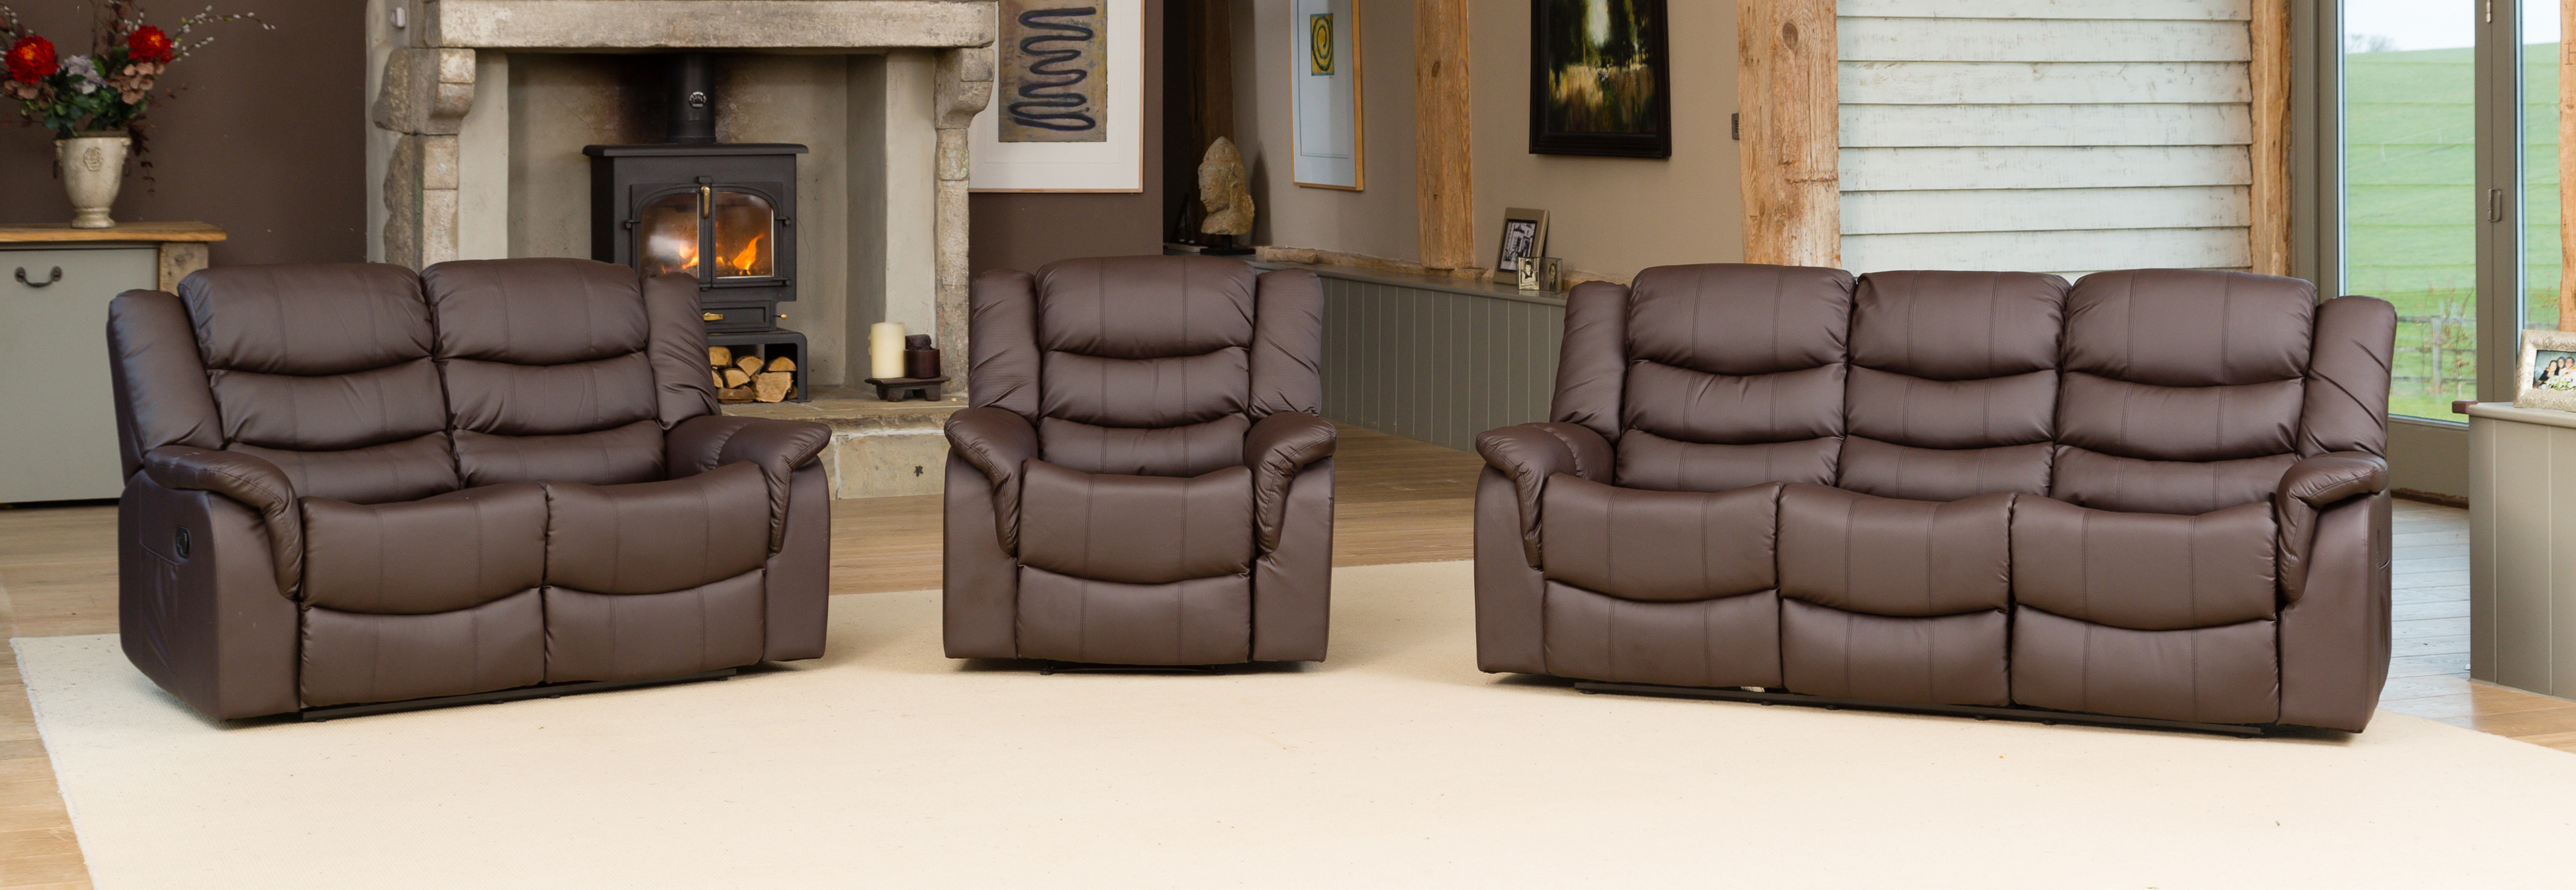 Kilcreene Reclining Suite brown